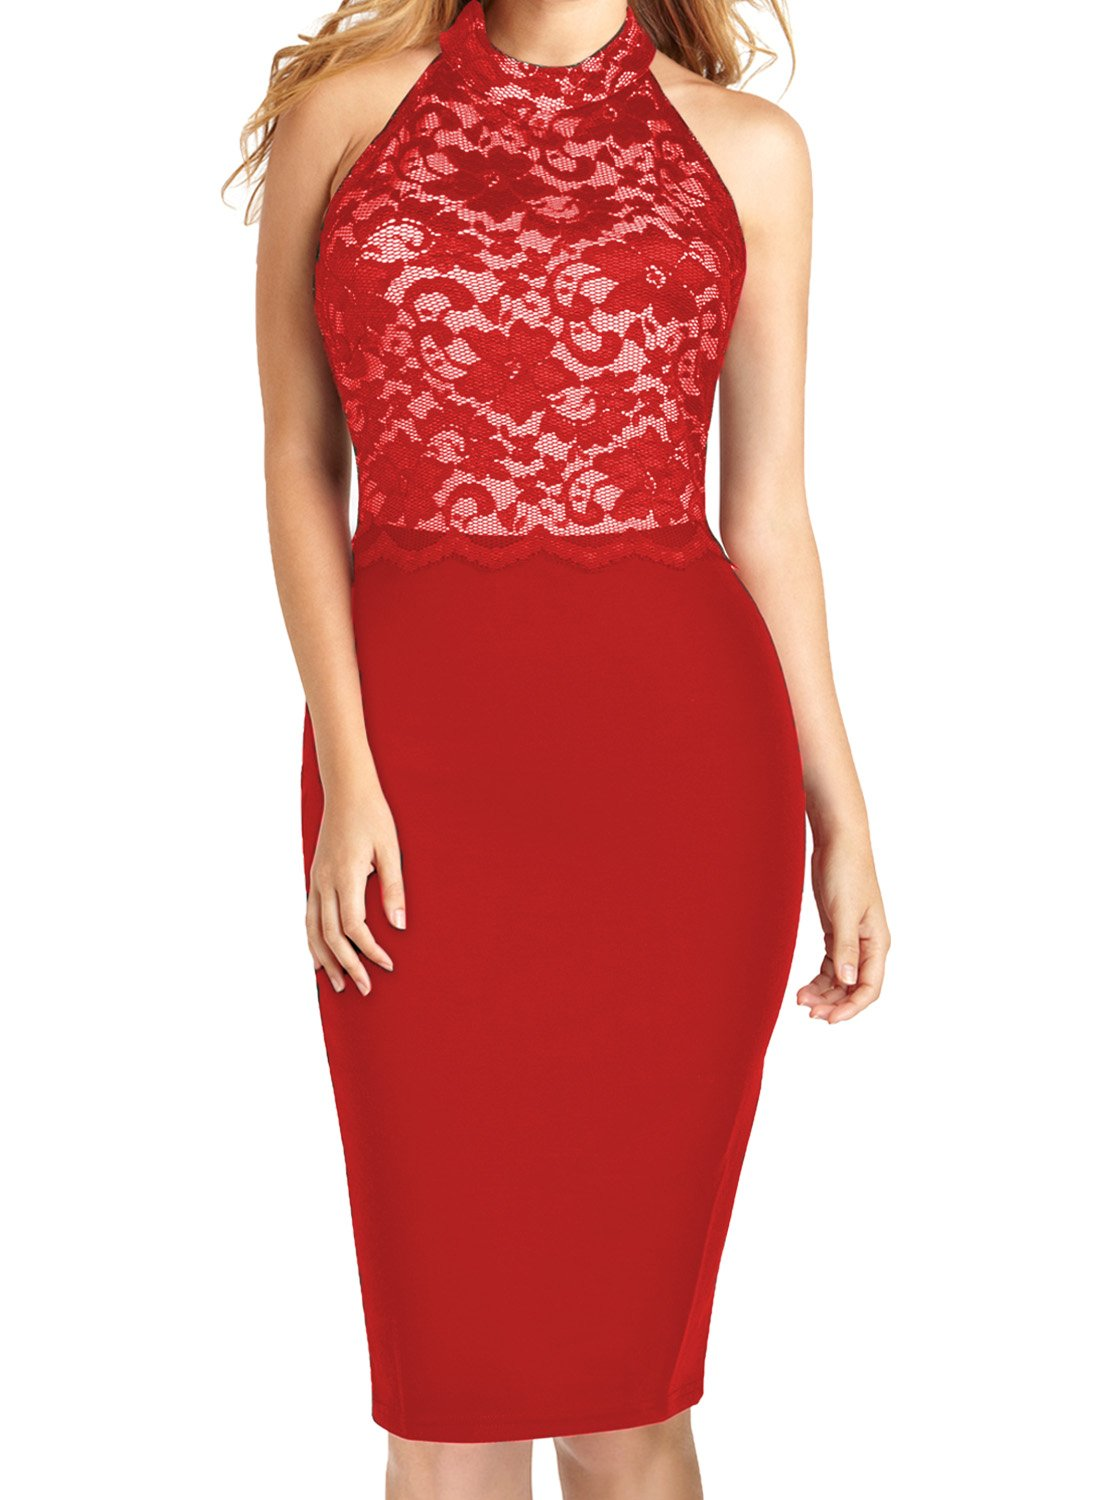 WOOSEA Women's Elegant Floral Lace Sleeveless Retro Bridesmaid Prom Dress (Large, Red)